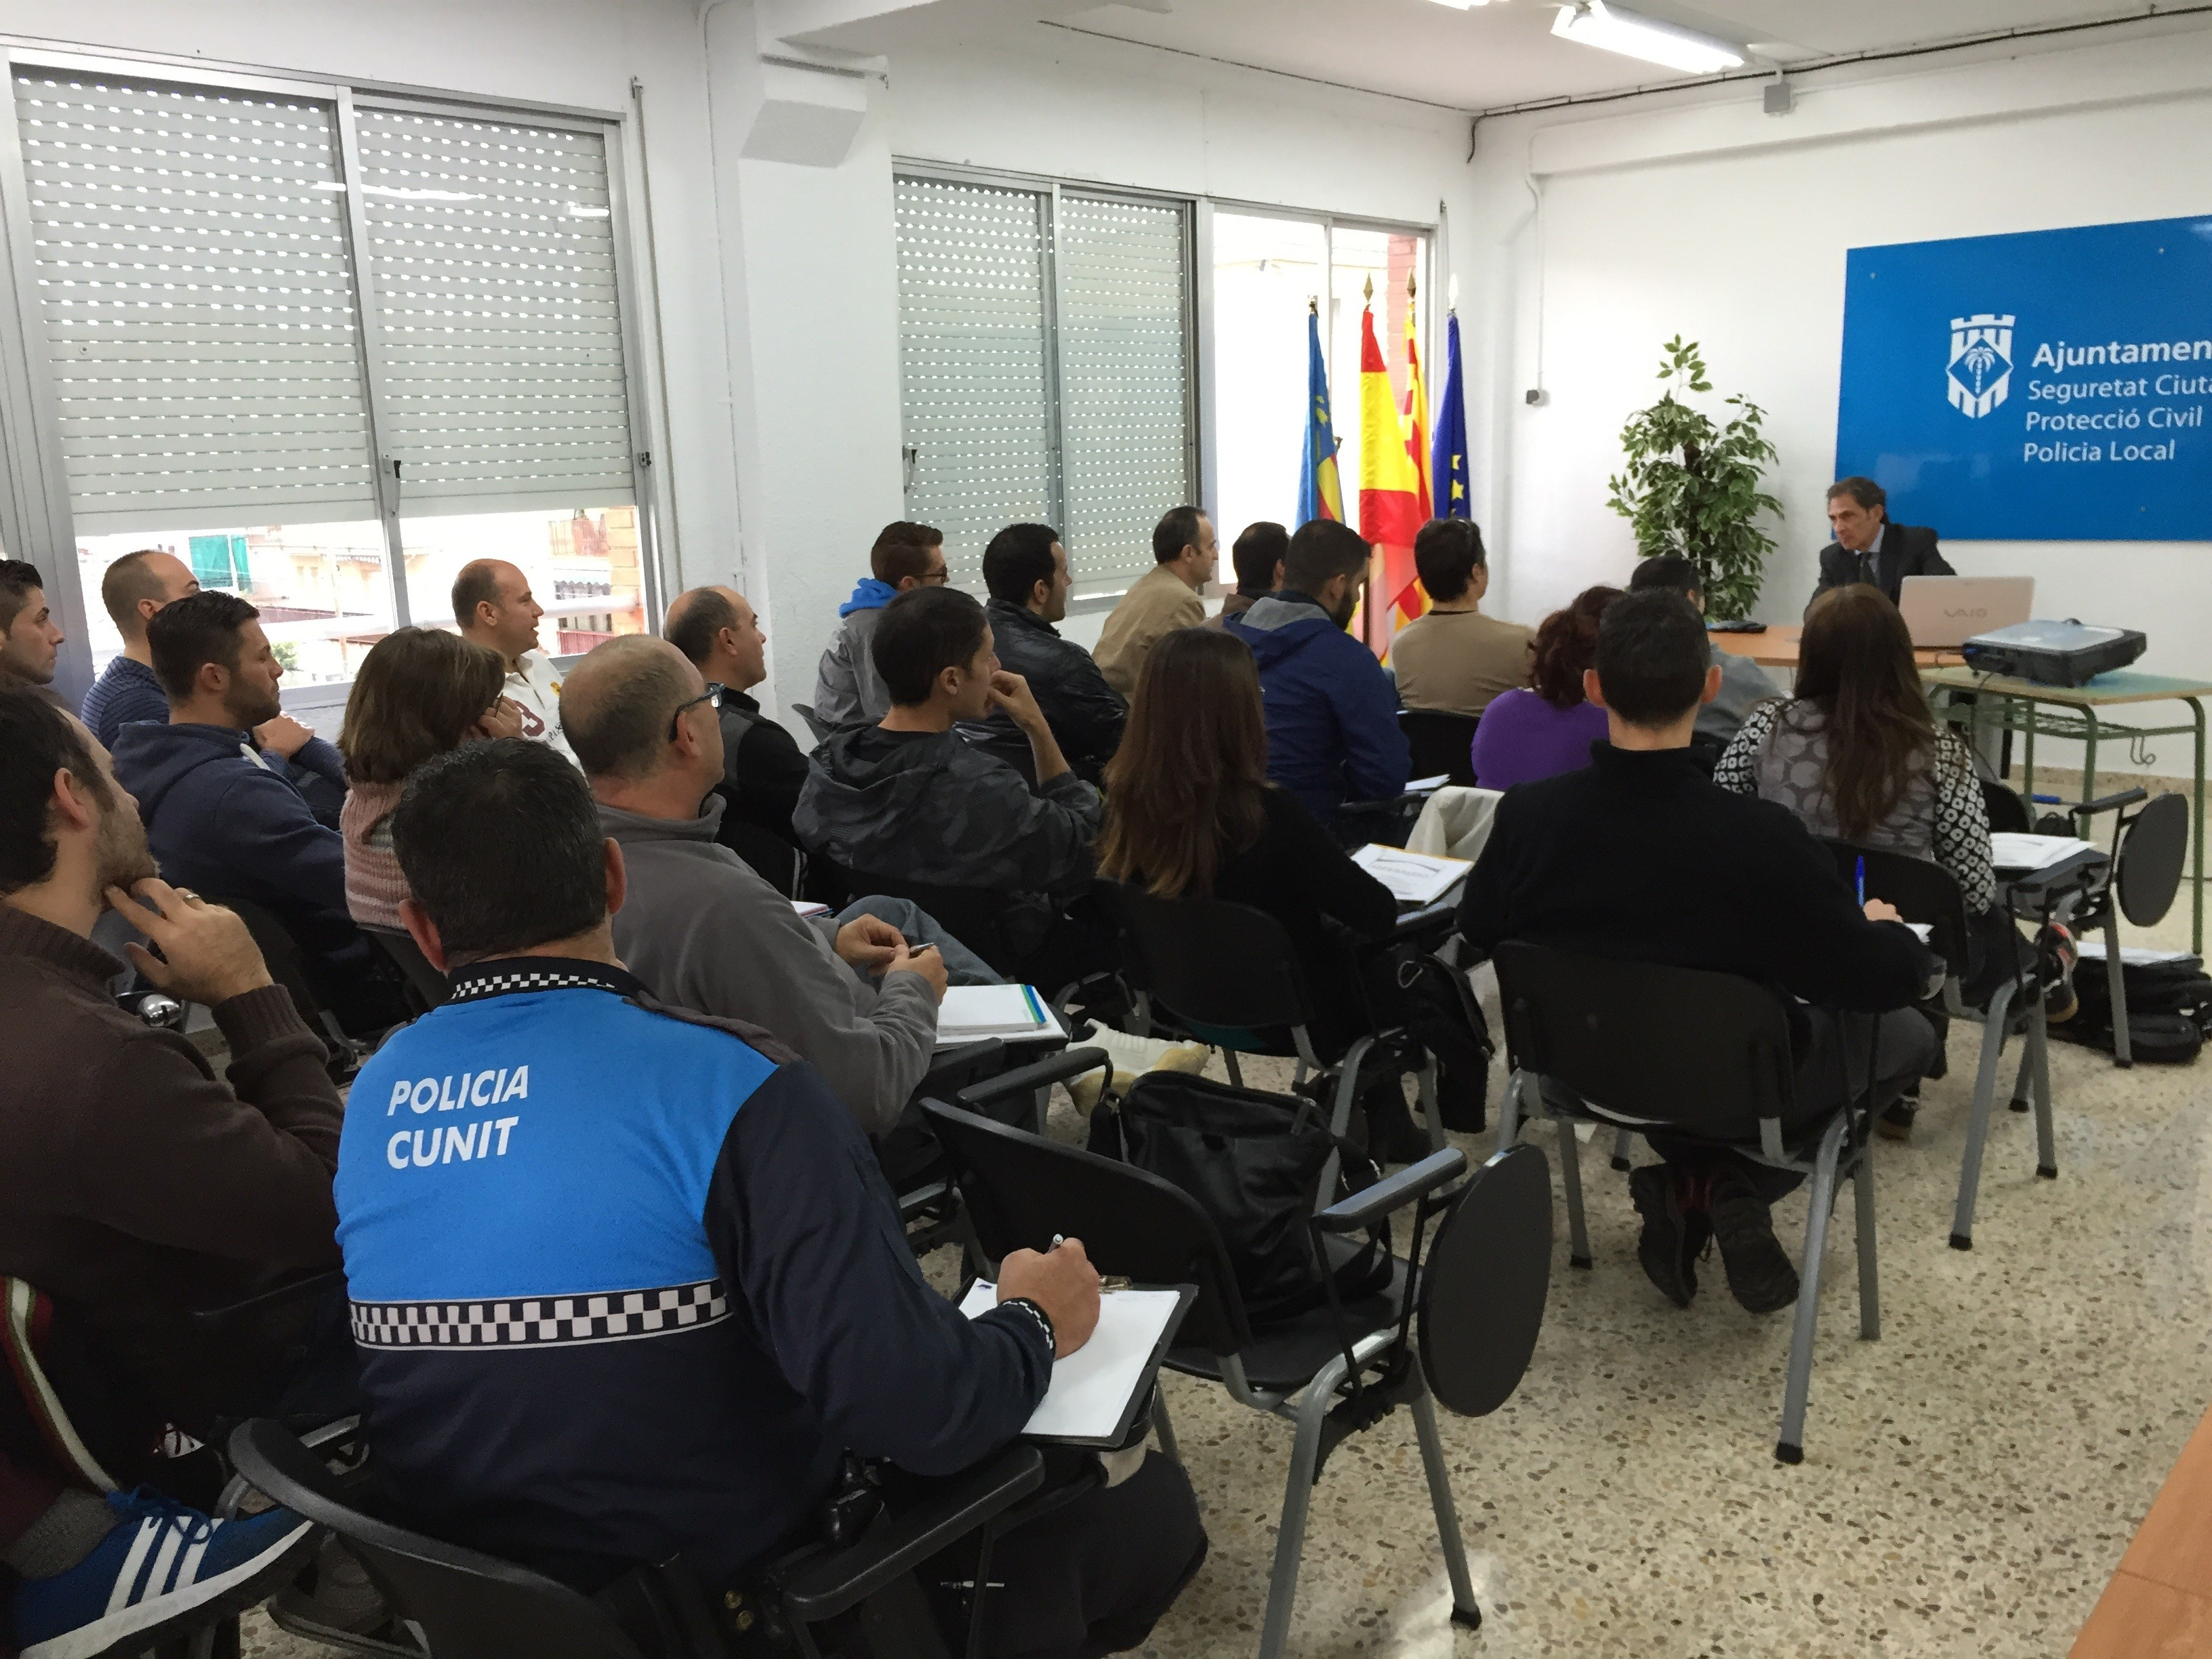 OFESAUTO ATTENDS AS SPEAKER A COURSE ABOUT COMPULSORY INSURANCE AND INTERNATIONAL TRAFFIC OF MOTOR VEHICLES IN THE LOCAL POLICE OF CUNIT (TARRAGONA)